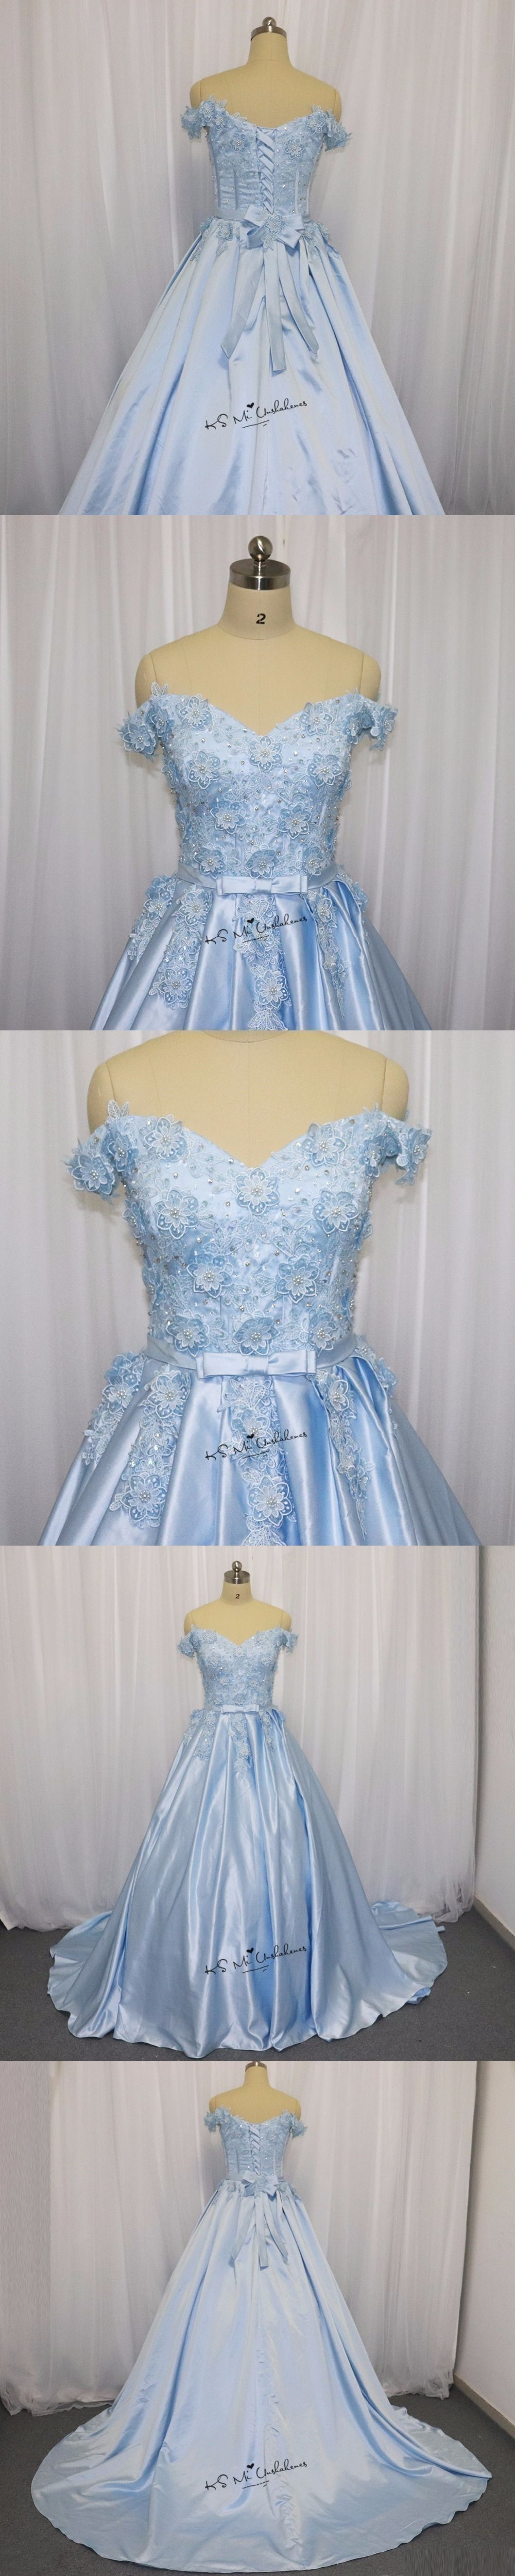 Plus size african wedding dresses  Ice Blue Wedding Dress Vintage Flowers Pearls Lace China Bridal